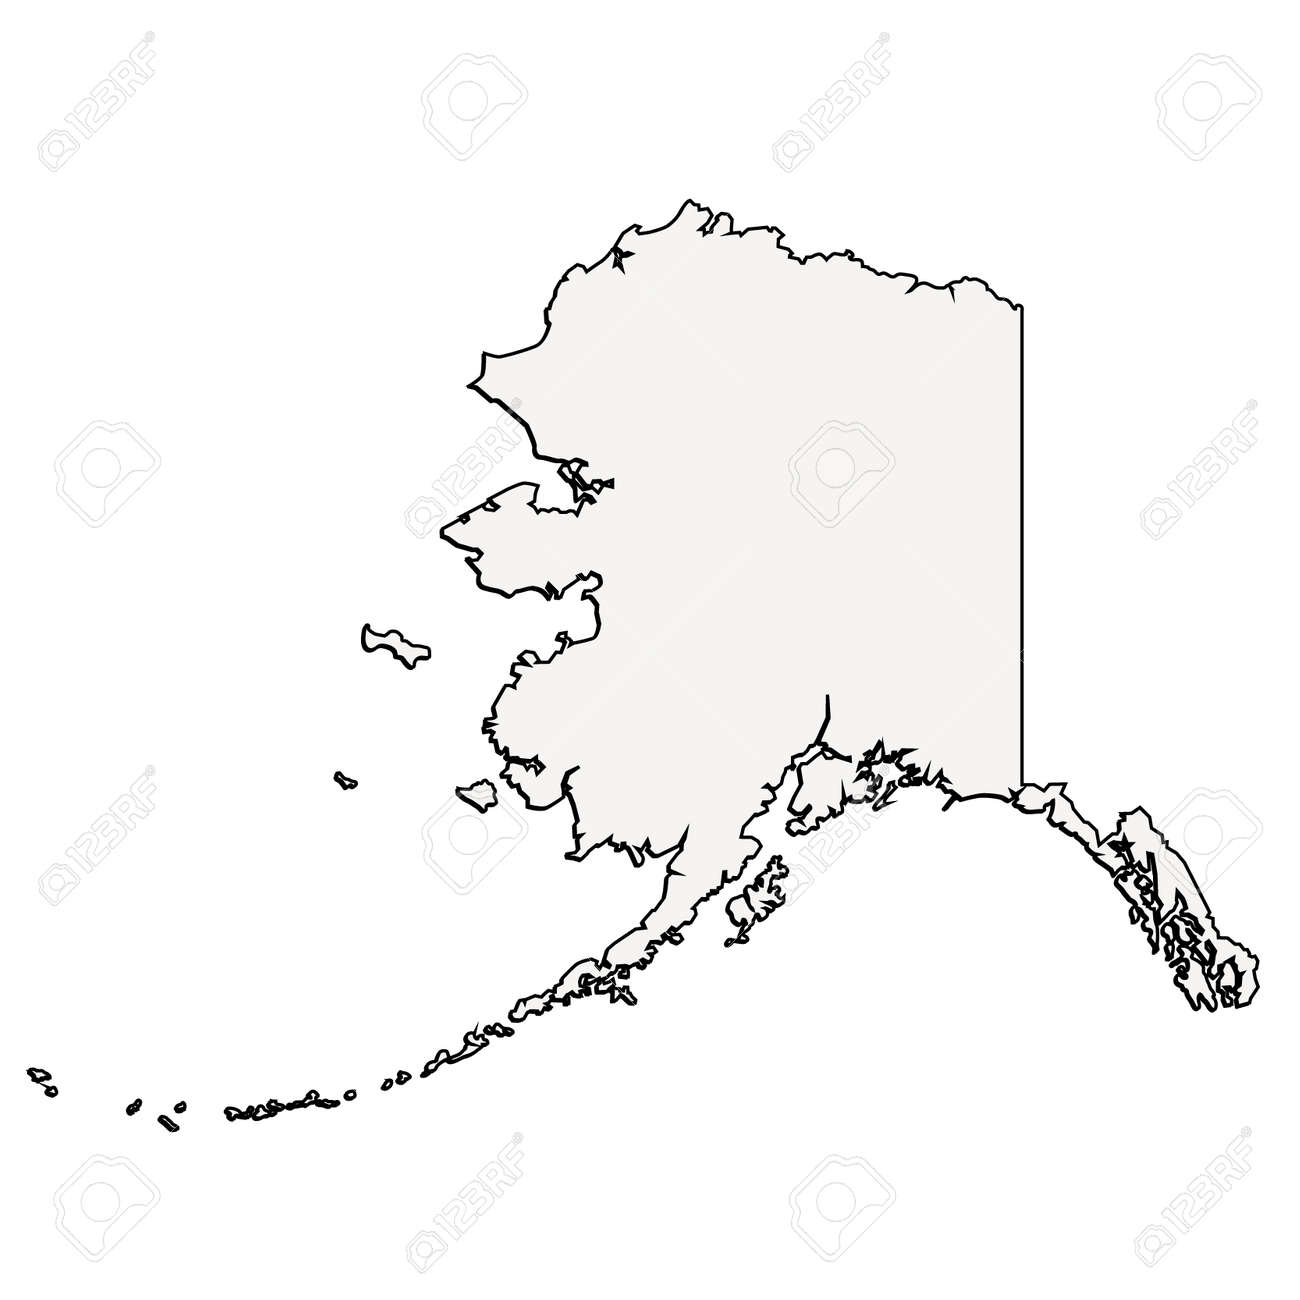 Alaska Usa Outline Vector Map Royalty Free Cliparts Vectors And